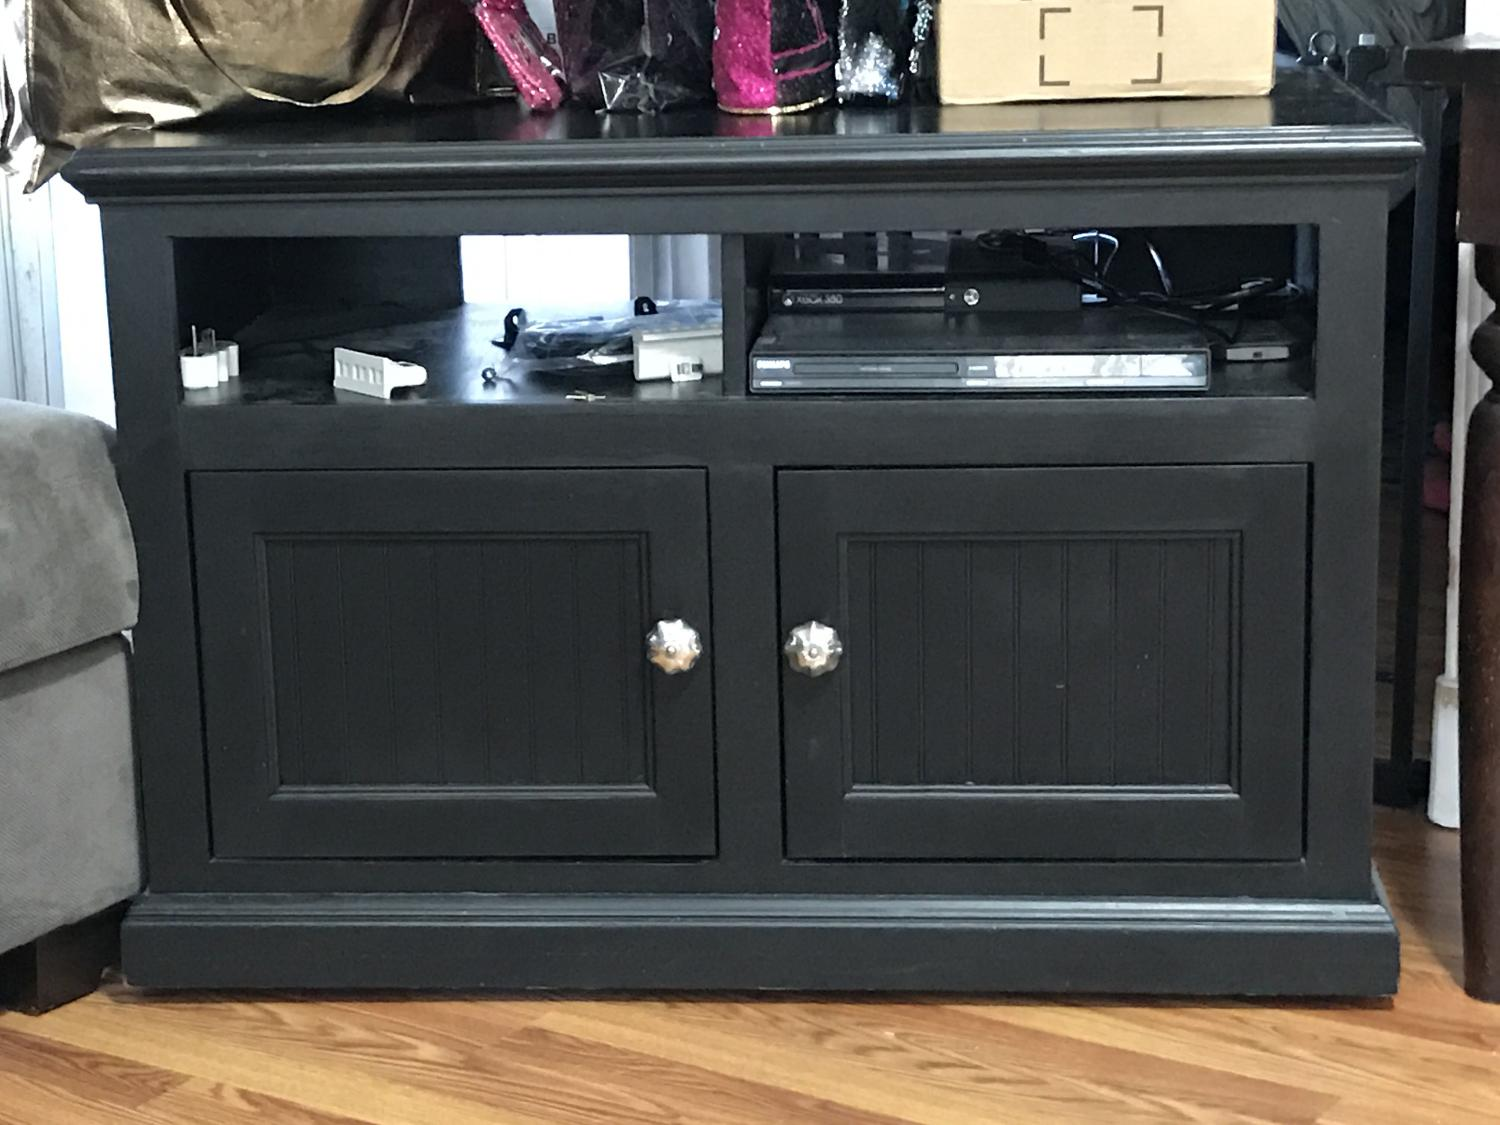 Find More Solid Wood Tv Stand For Sale At Up To 90 Off Metairie La